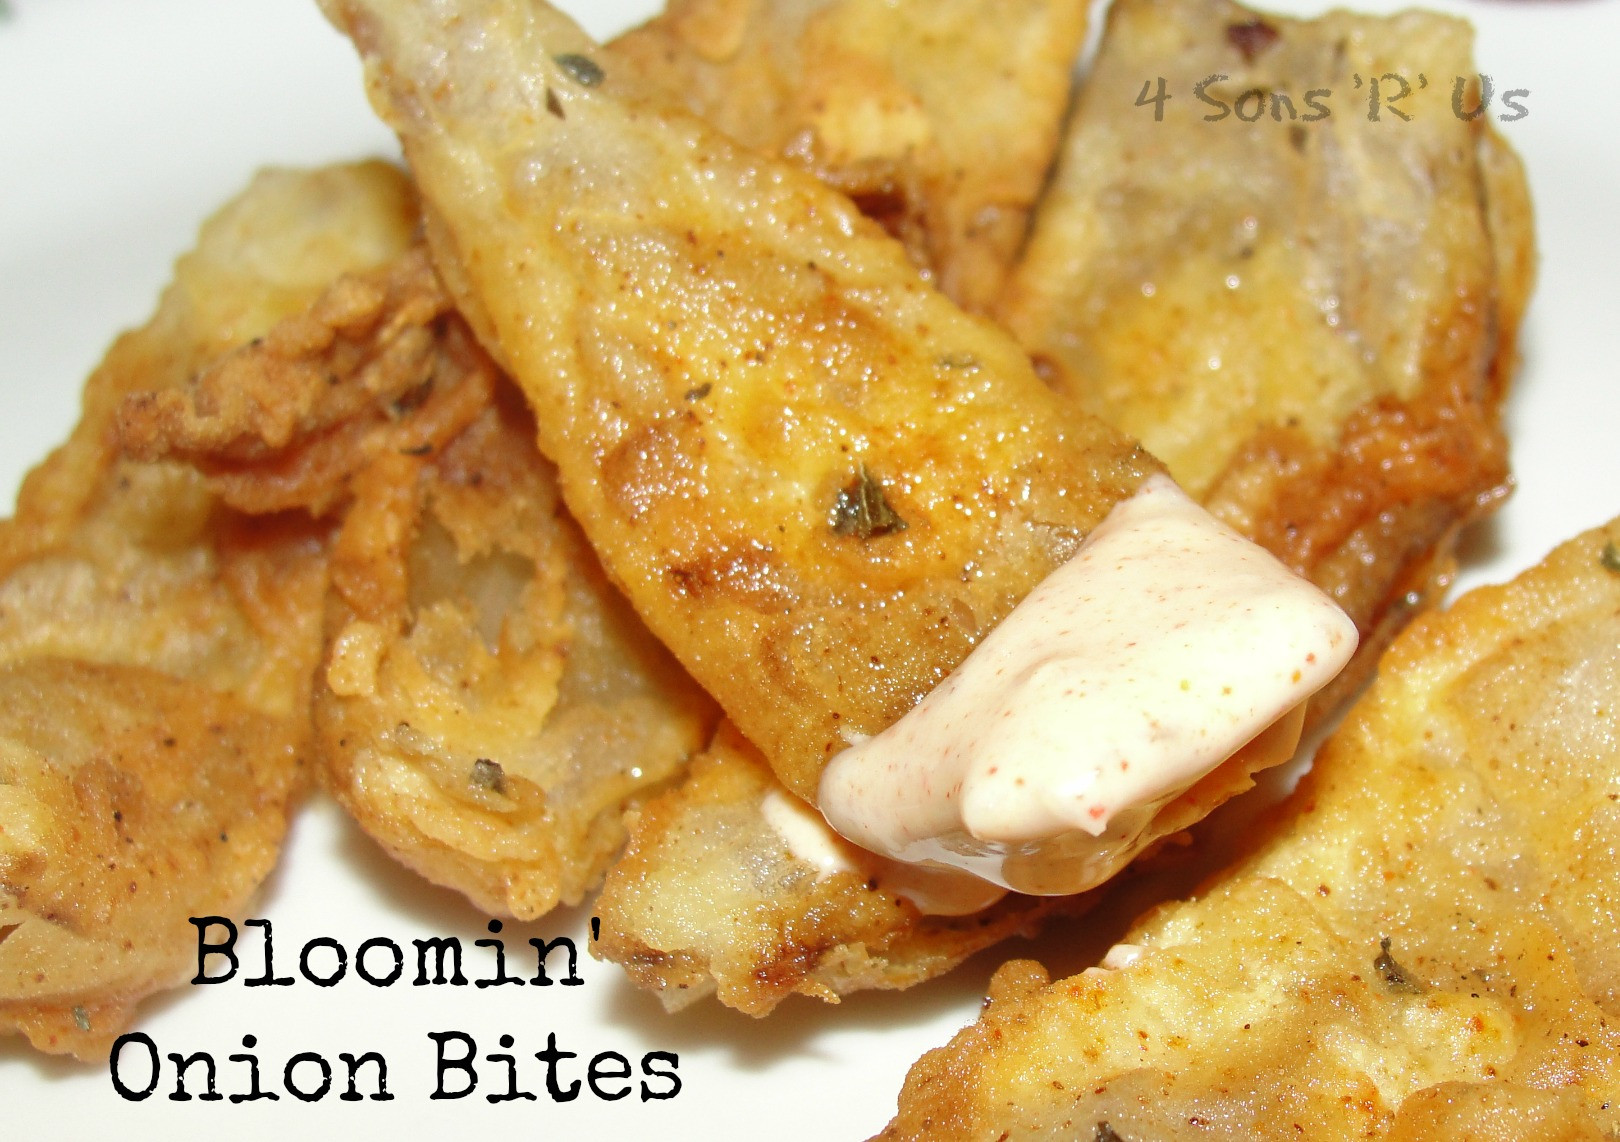 Bloomin Onion Sauce  Bloomin ion Bites with Dipping Sauce 4 Sons R Us